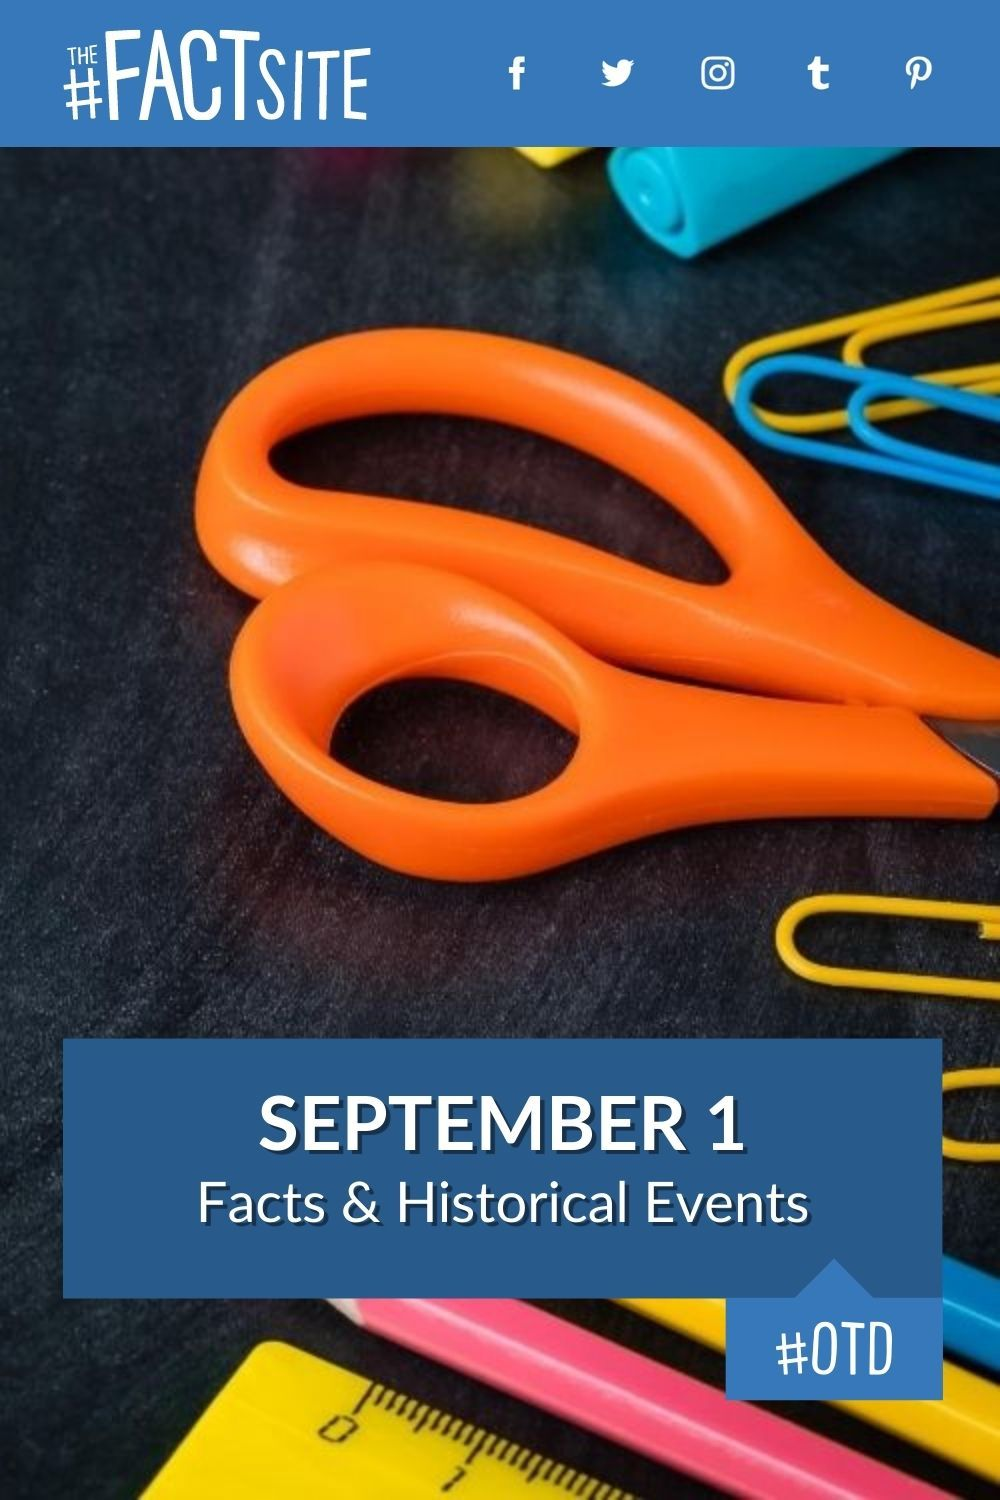 Facts & Historic Events That Happened on September 1